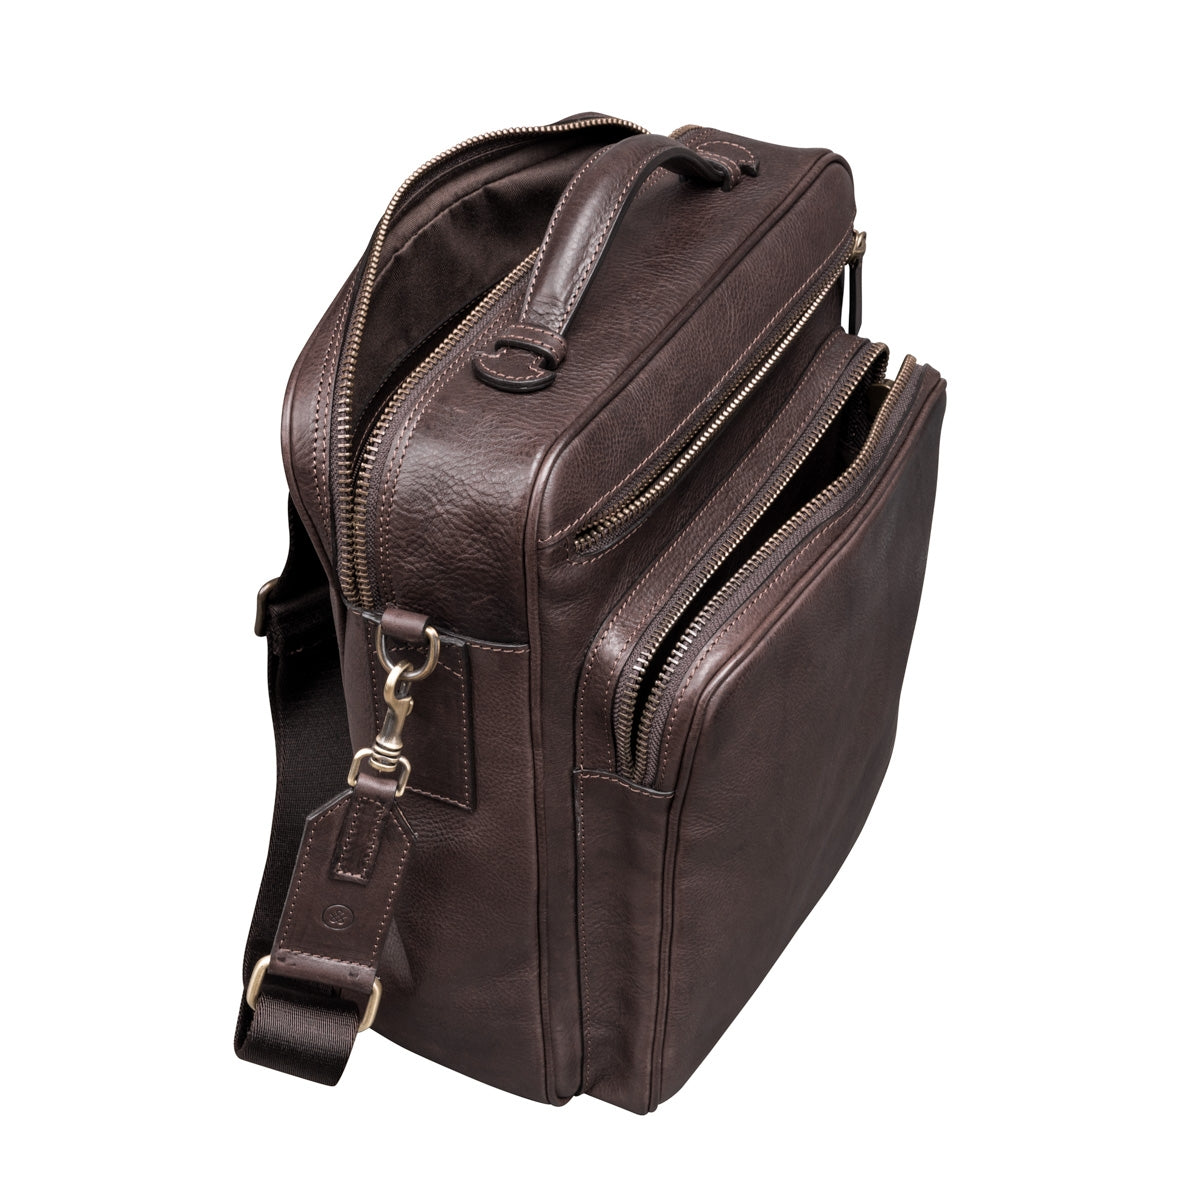 Image 6 of the 'SantinoL' Men's Brown Leather Convertible Backpack Shoulder